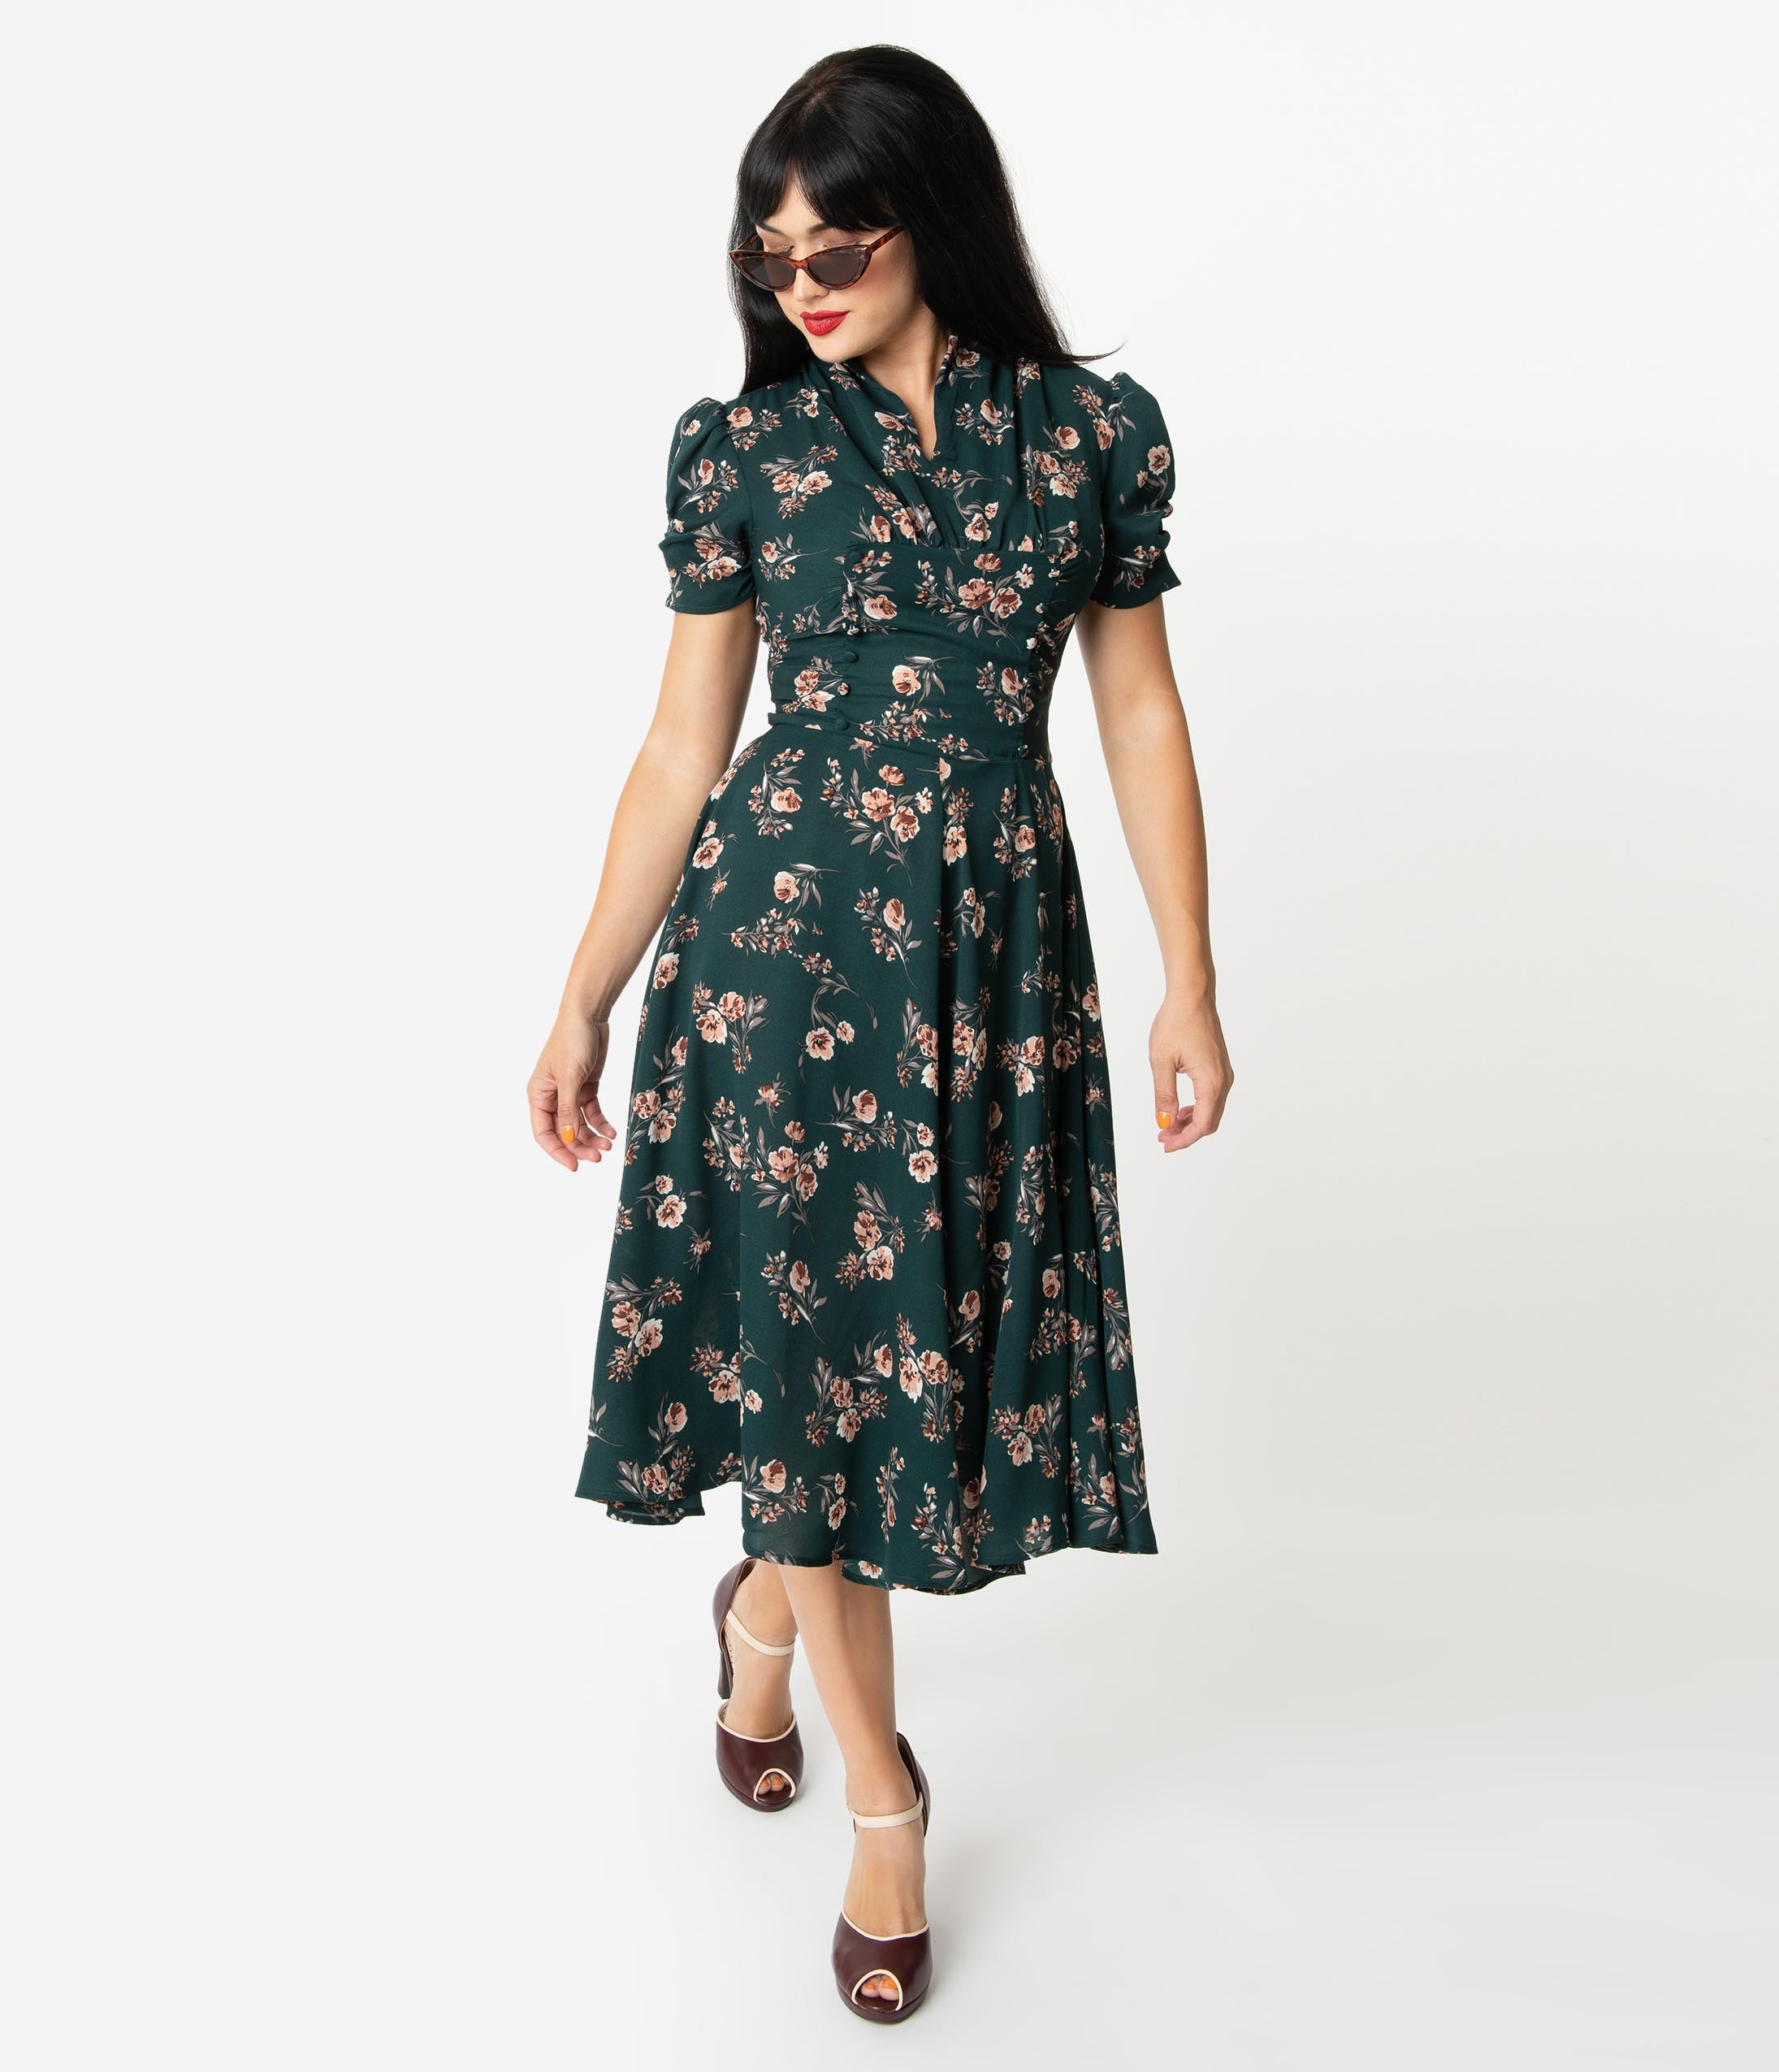 1940s Dresses | 40s Dress, Swing Dress Unique Vintage 1940S Green Floral Print Camilla Midi Dress $78.00 AT vintagedancer.com